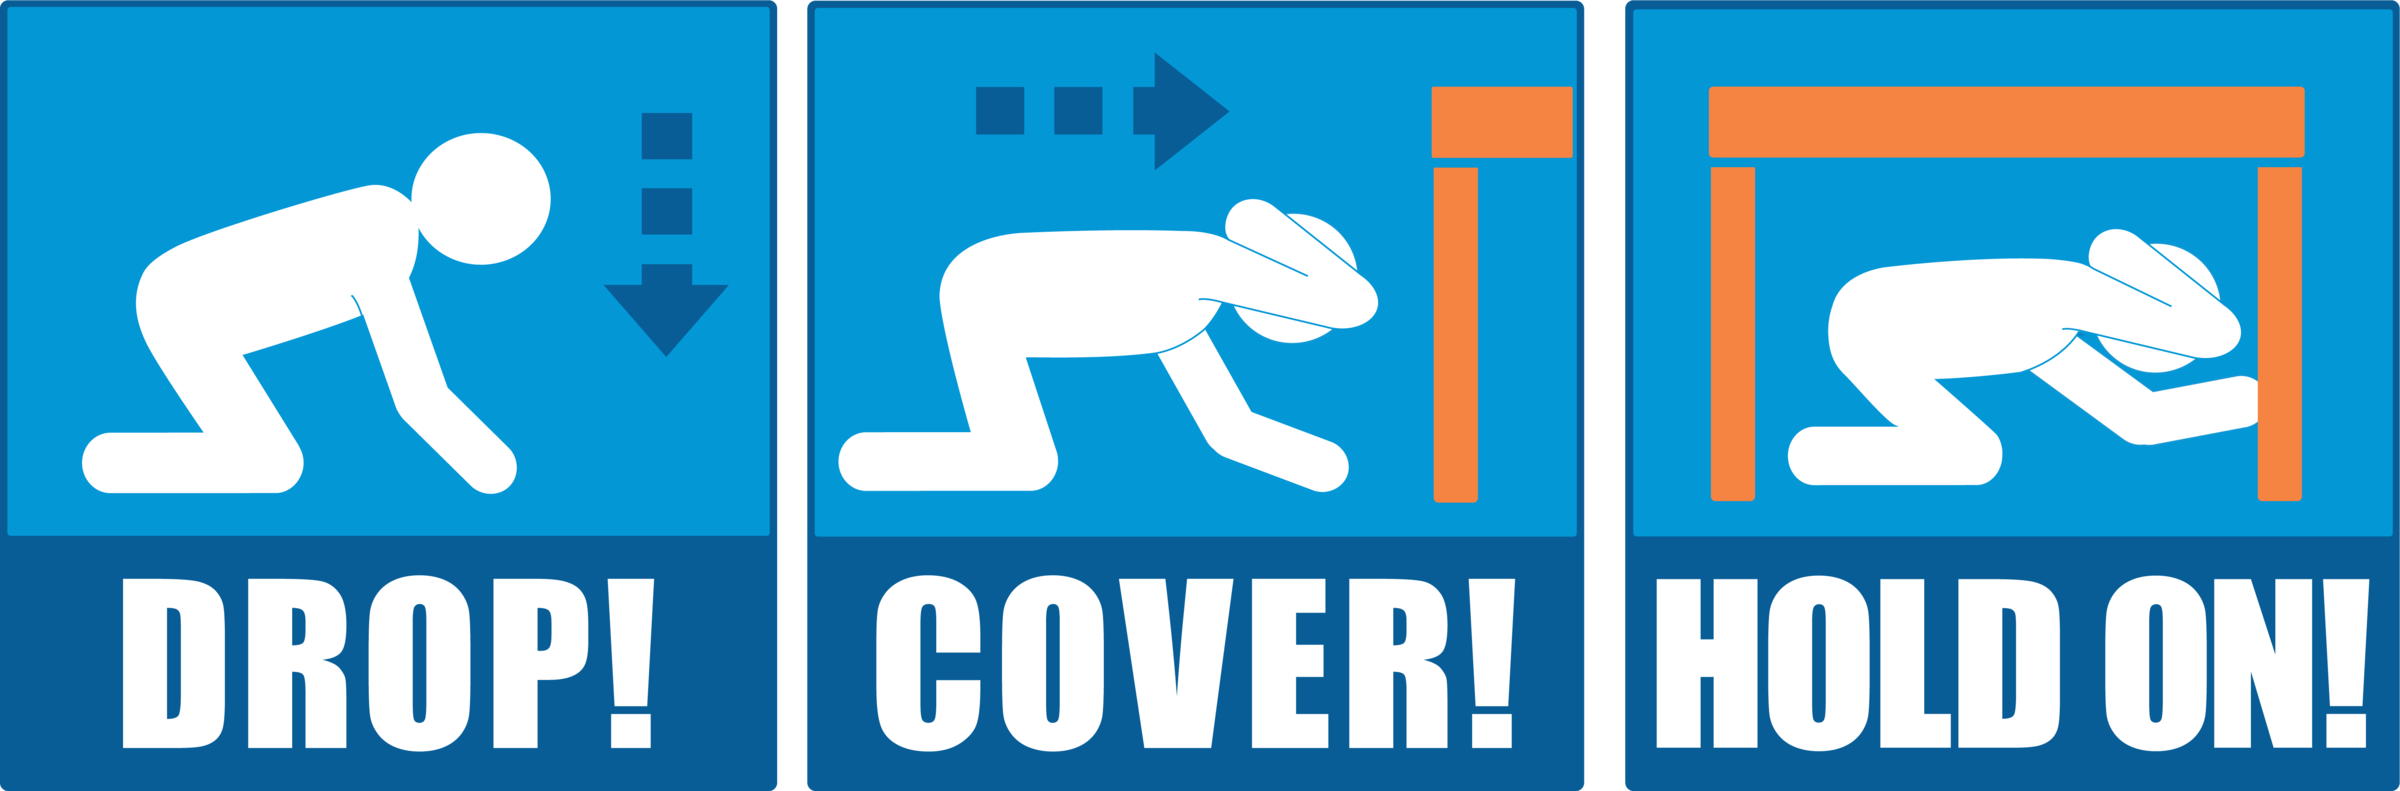 Earthquake clipart management. Drop cover and hold